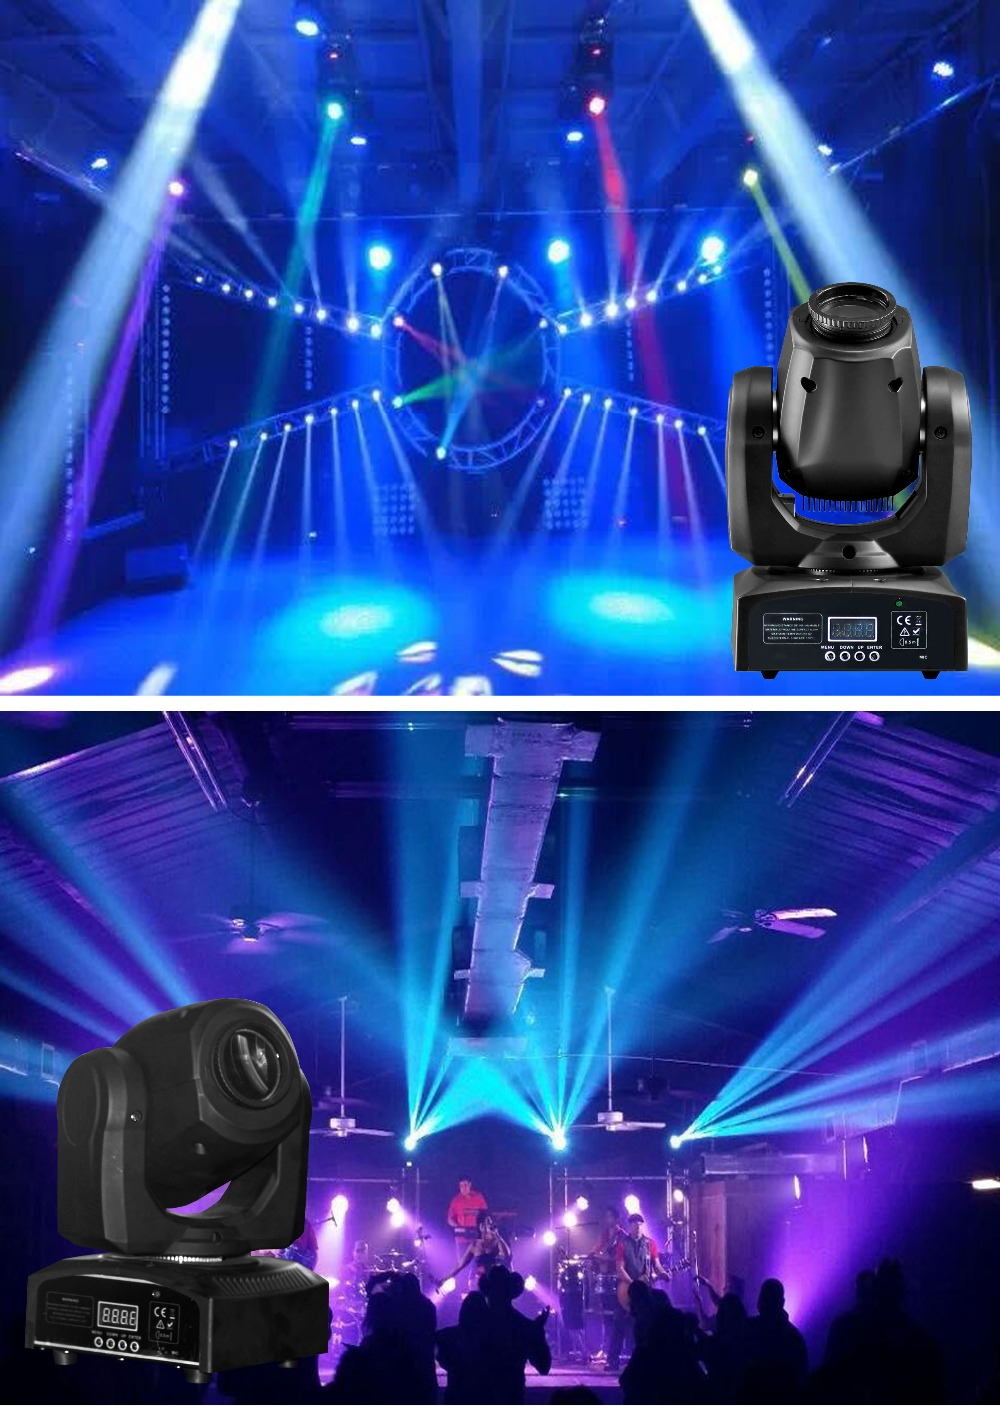 10X LOT Hot Sale Rasha Inno Pocet Spot 10W Mini LED Moving Head Spot Light,LED Moving Head Gobo Light For Event Party цена